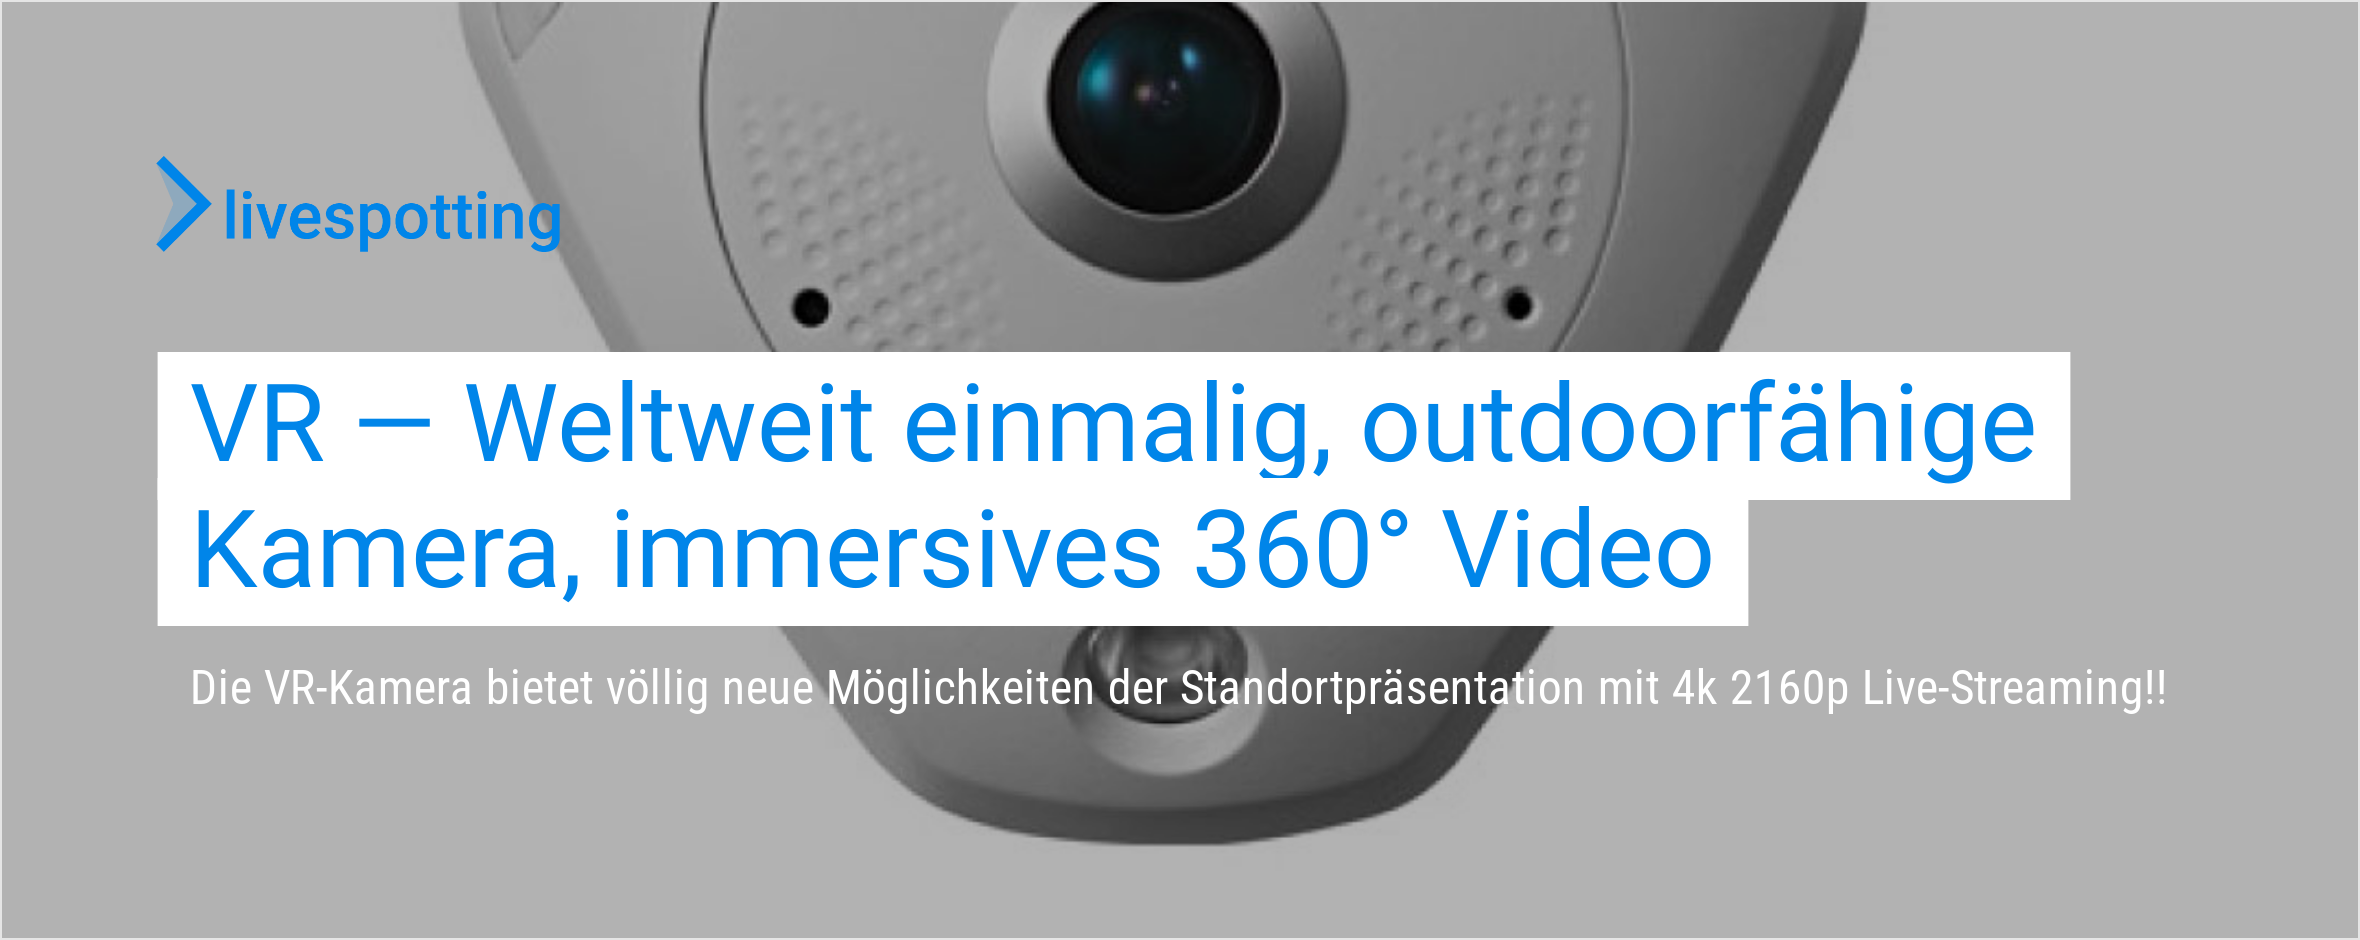 Virtual Reality Livestreaming für Events mit Fisheye Kameras.